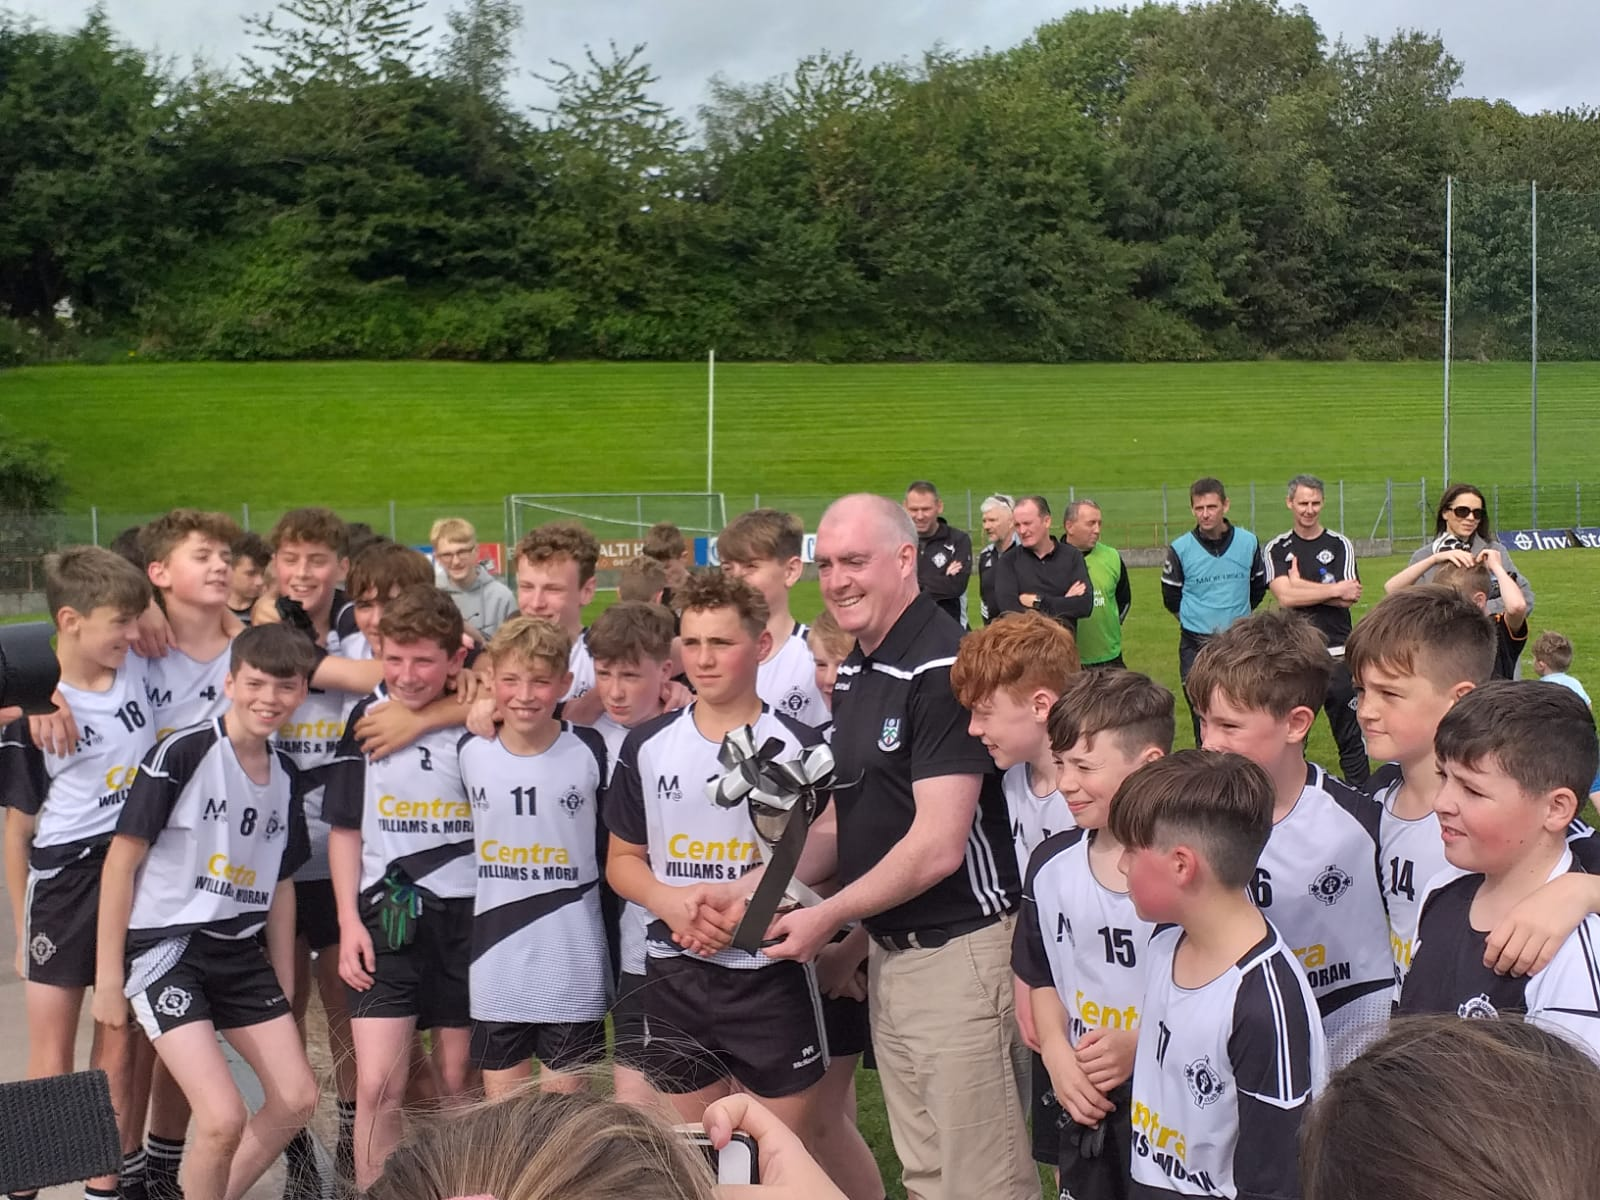 Energetic Emyvale Become U13 Division 2 Champions